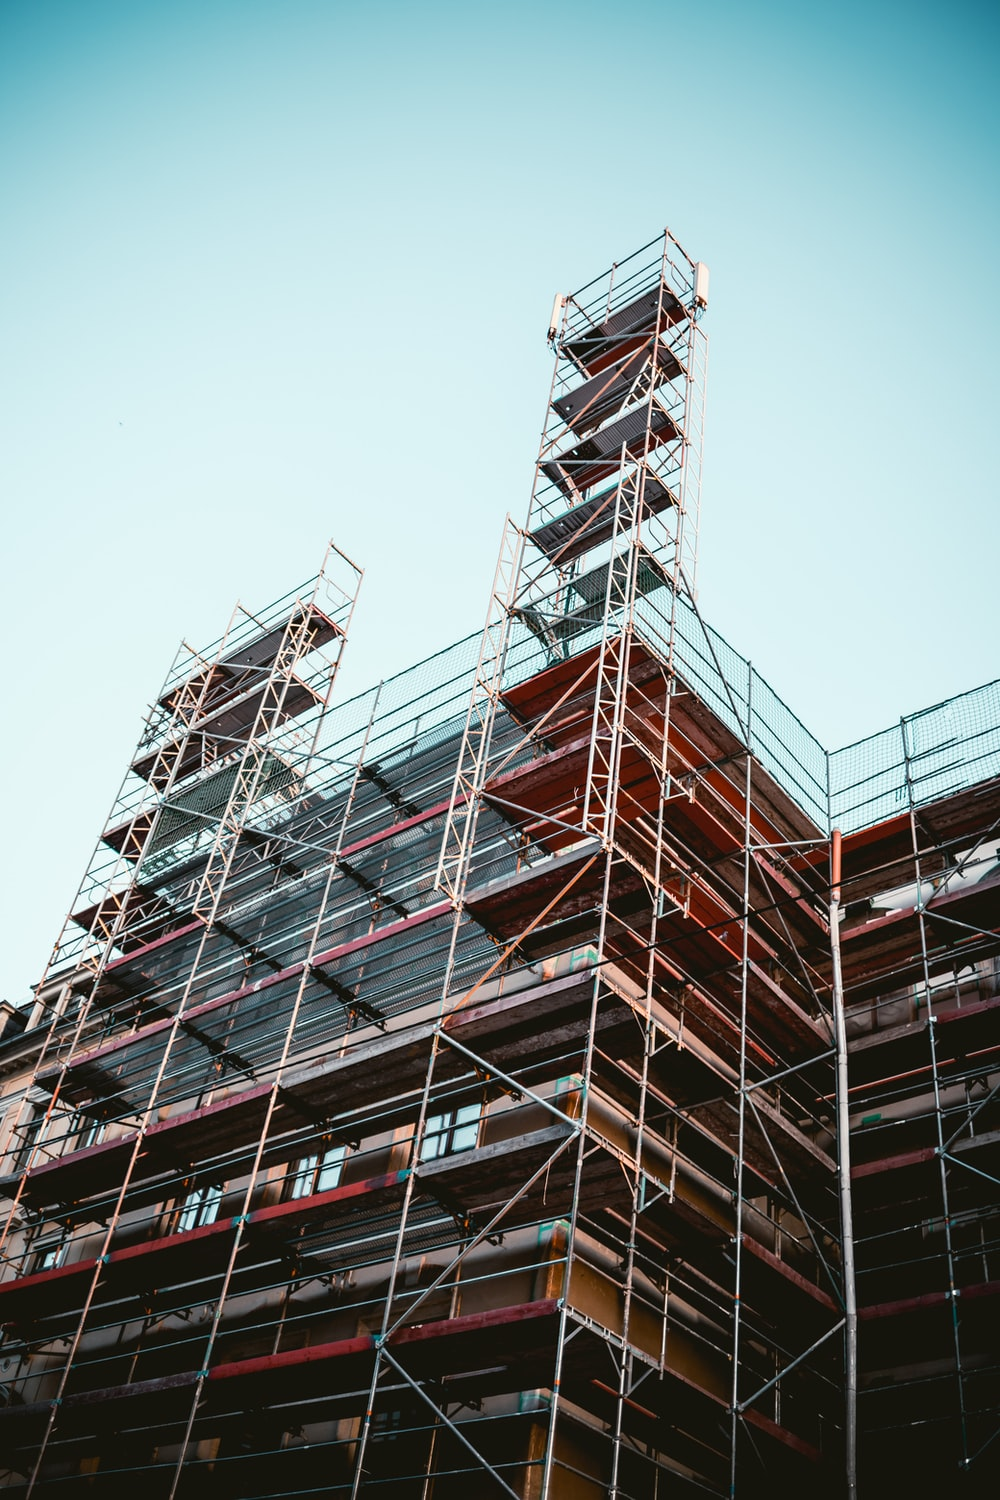 worm view photo of scaffolding